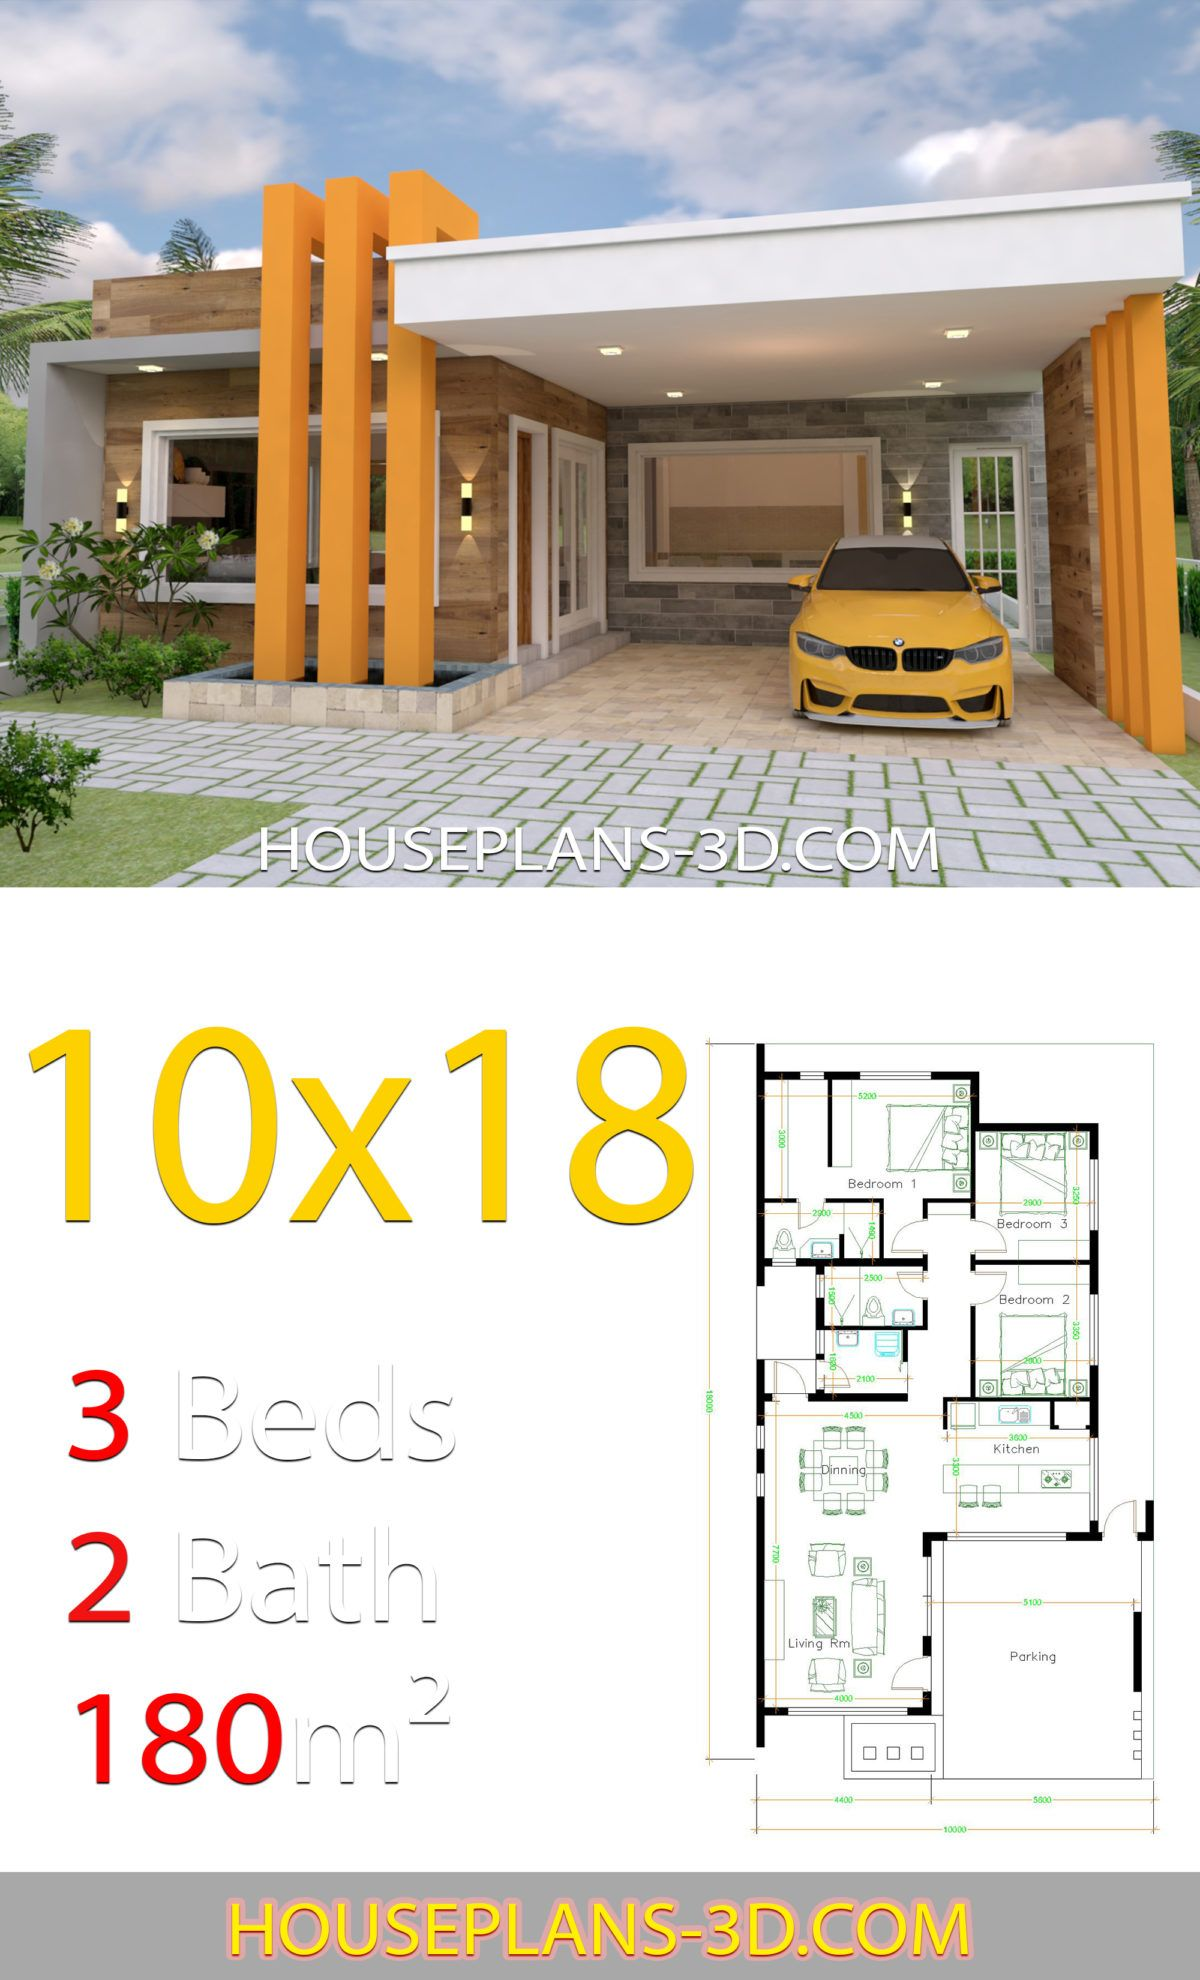 House Design 10x18 With 3 Bedrooms Terrace Roof House Plans 3d In 2020 House Construction Plan House Plans My House Plans